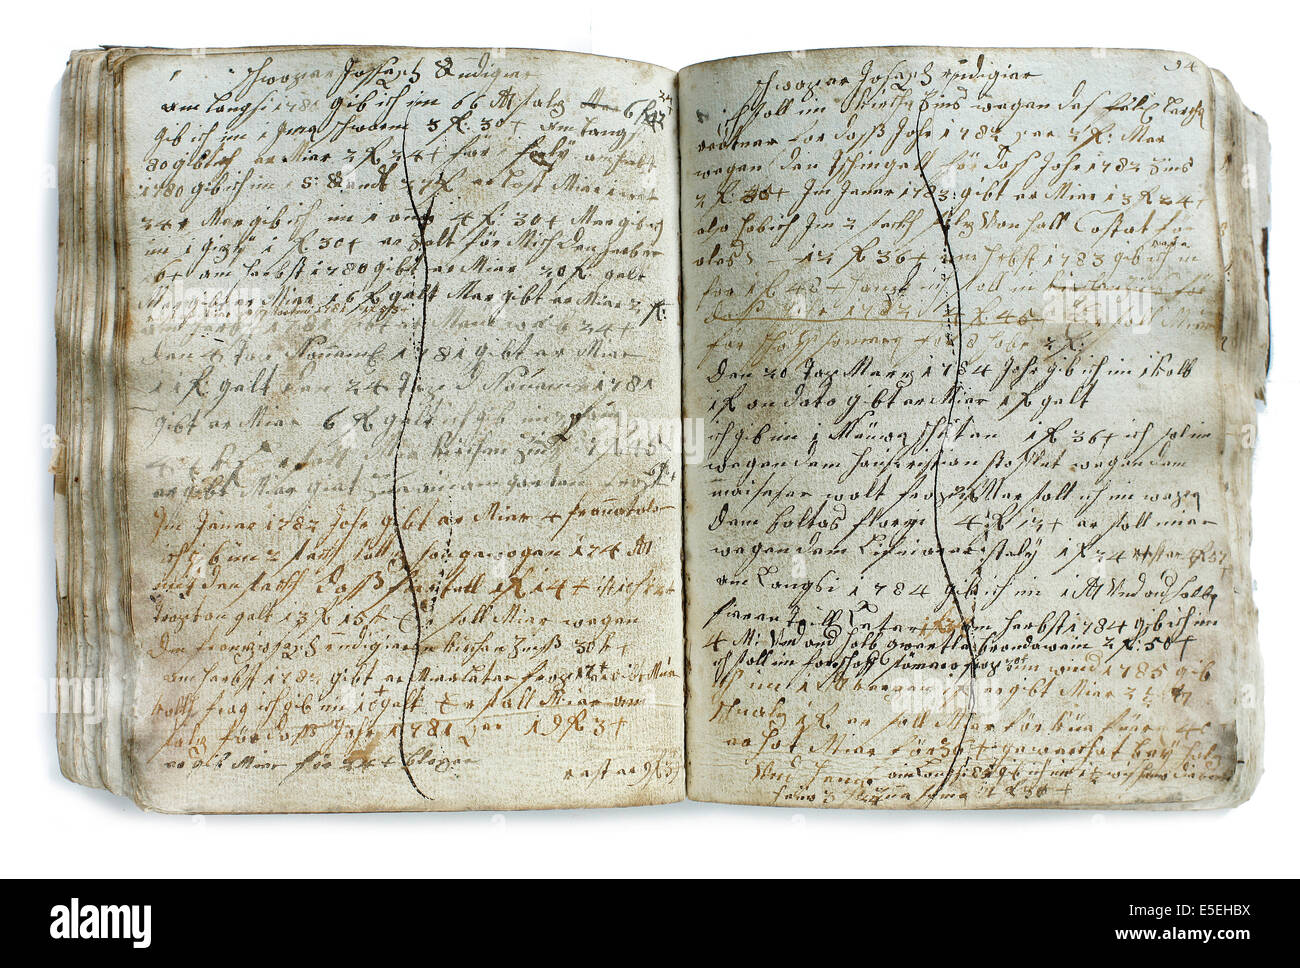 Debt book, circa 1800, found in an abandoned farmhouse, Tyrol, Austria - Stock Image